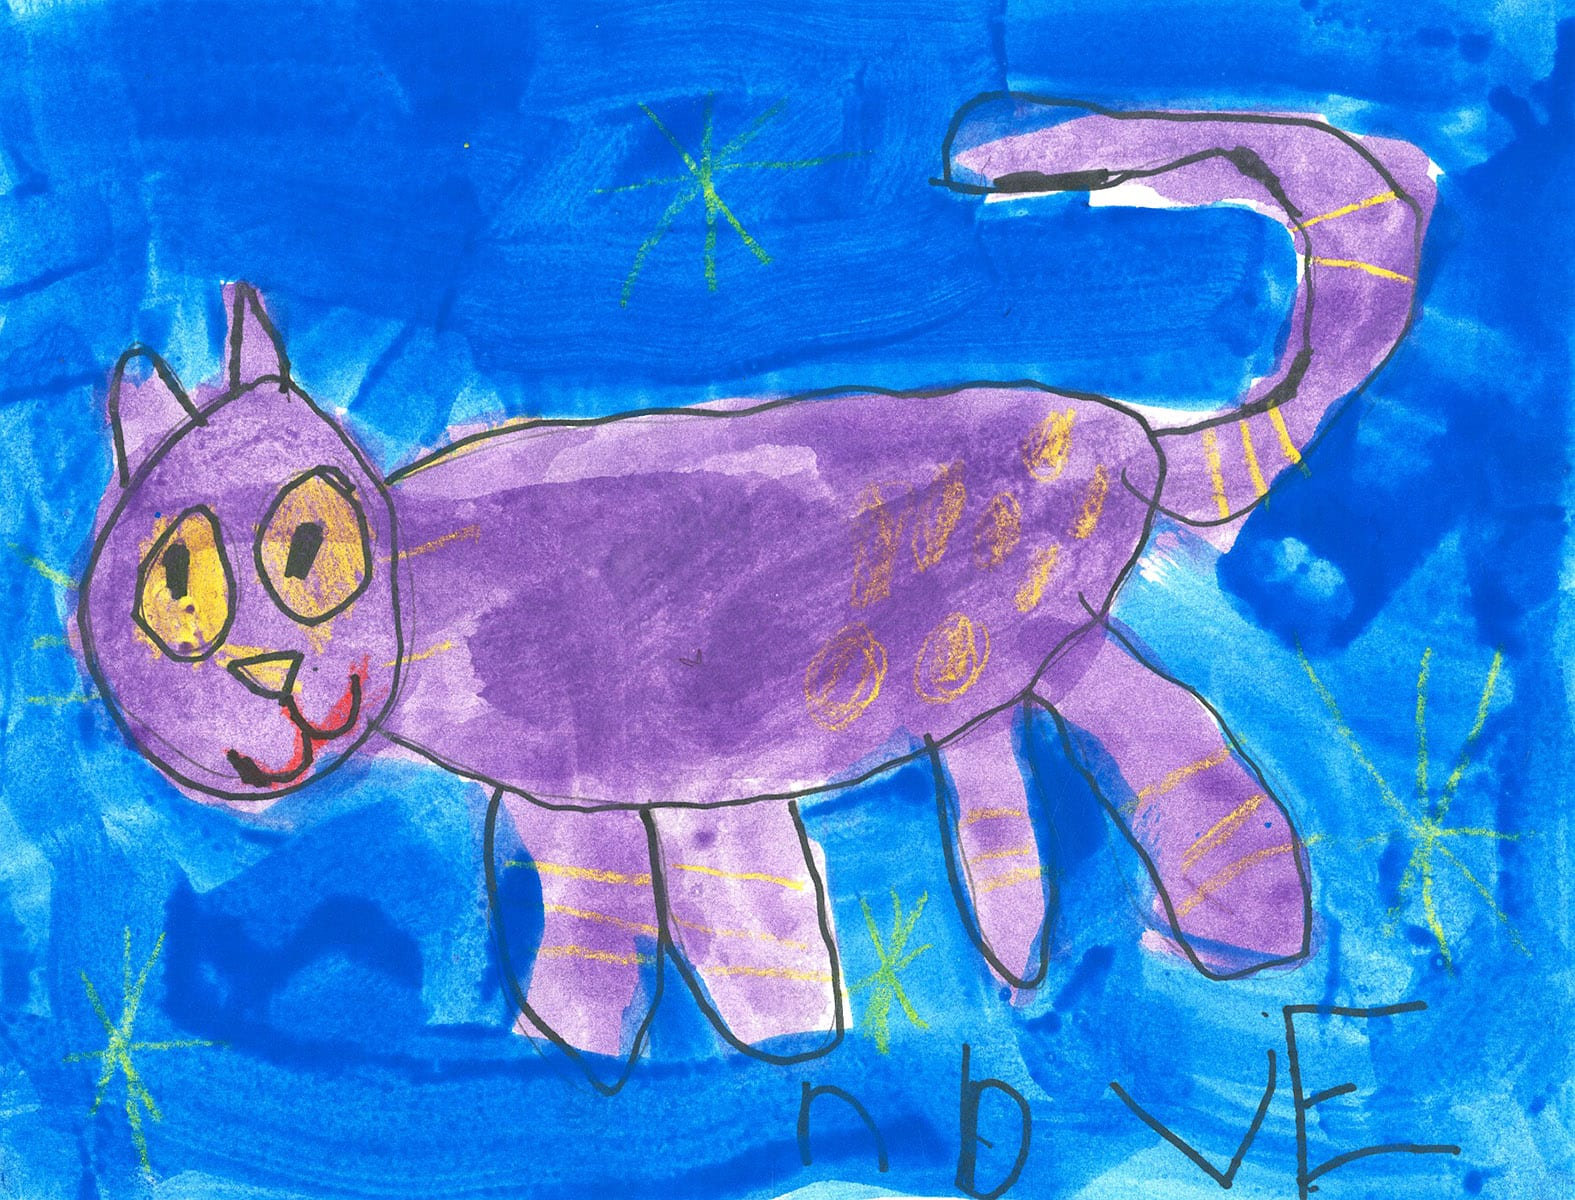 My Favorite Animal or Pet Artwork by Evan at LaCosta Meadows Elementary